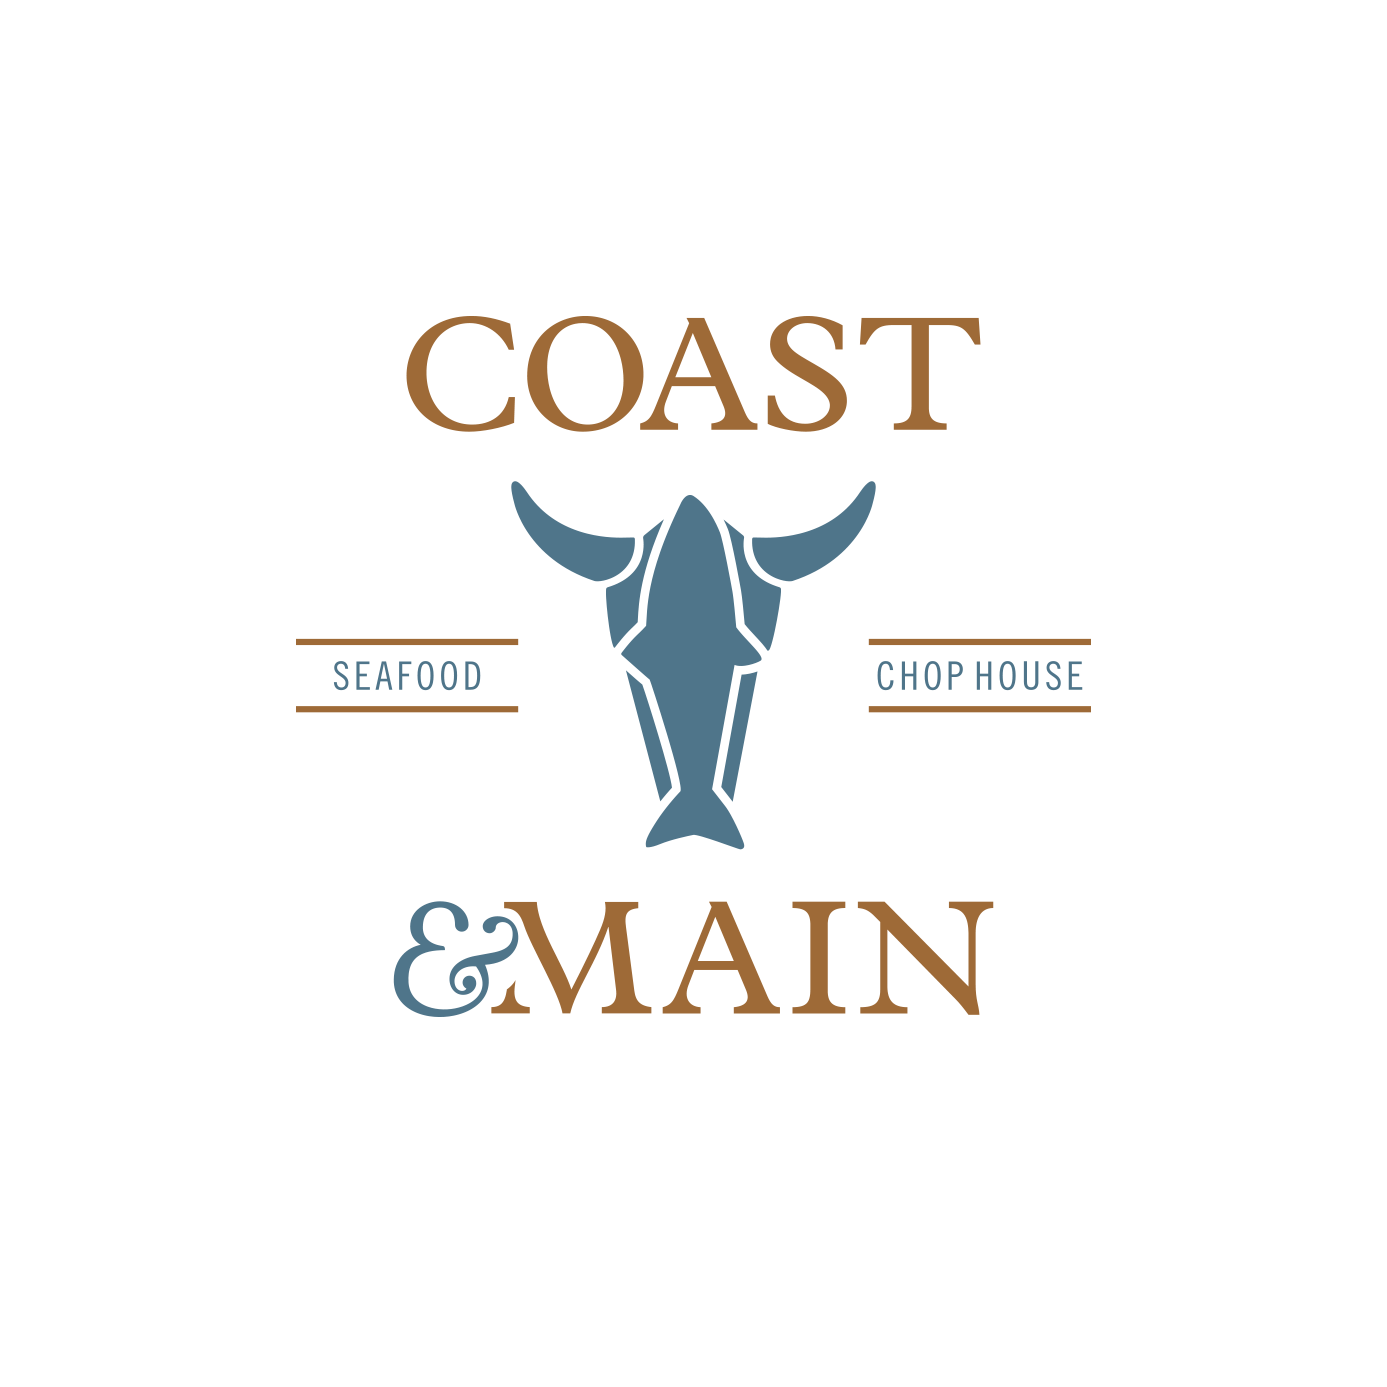 coastandmain_logo_bootstrap_design_co.png